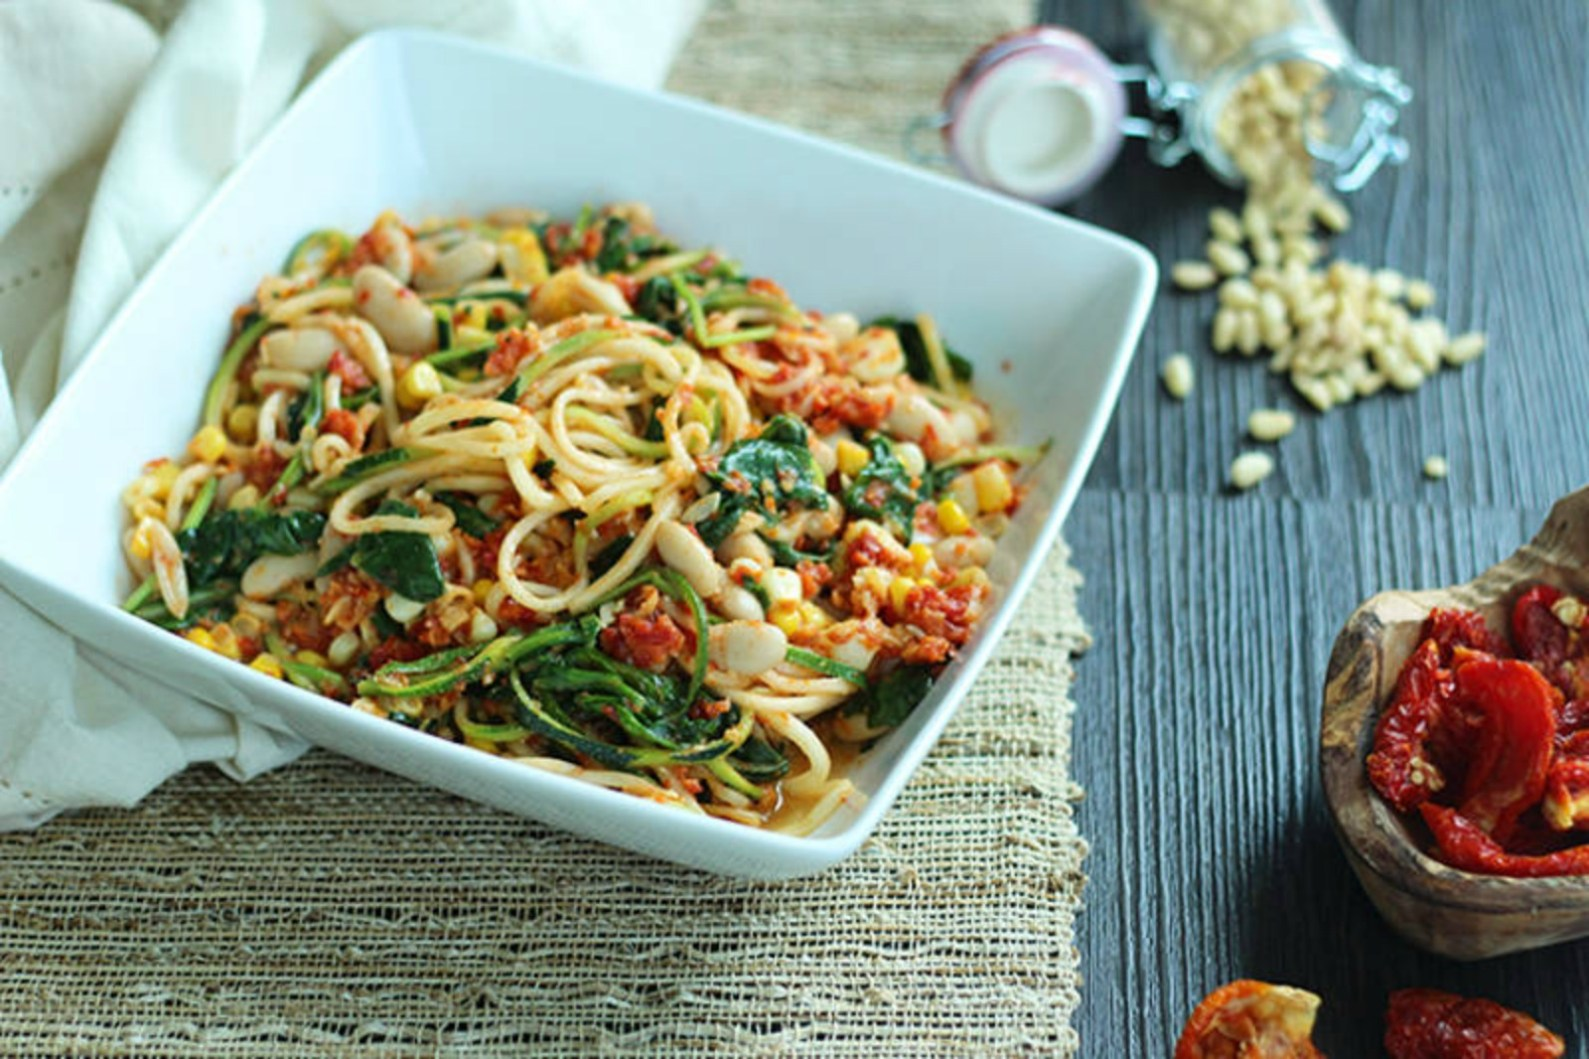 5 Simple And Delicious Plant Based Meal Ideas For The Non Vegan Cook